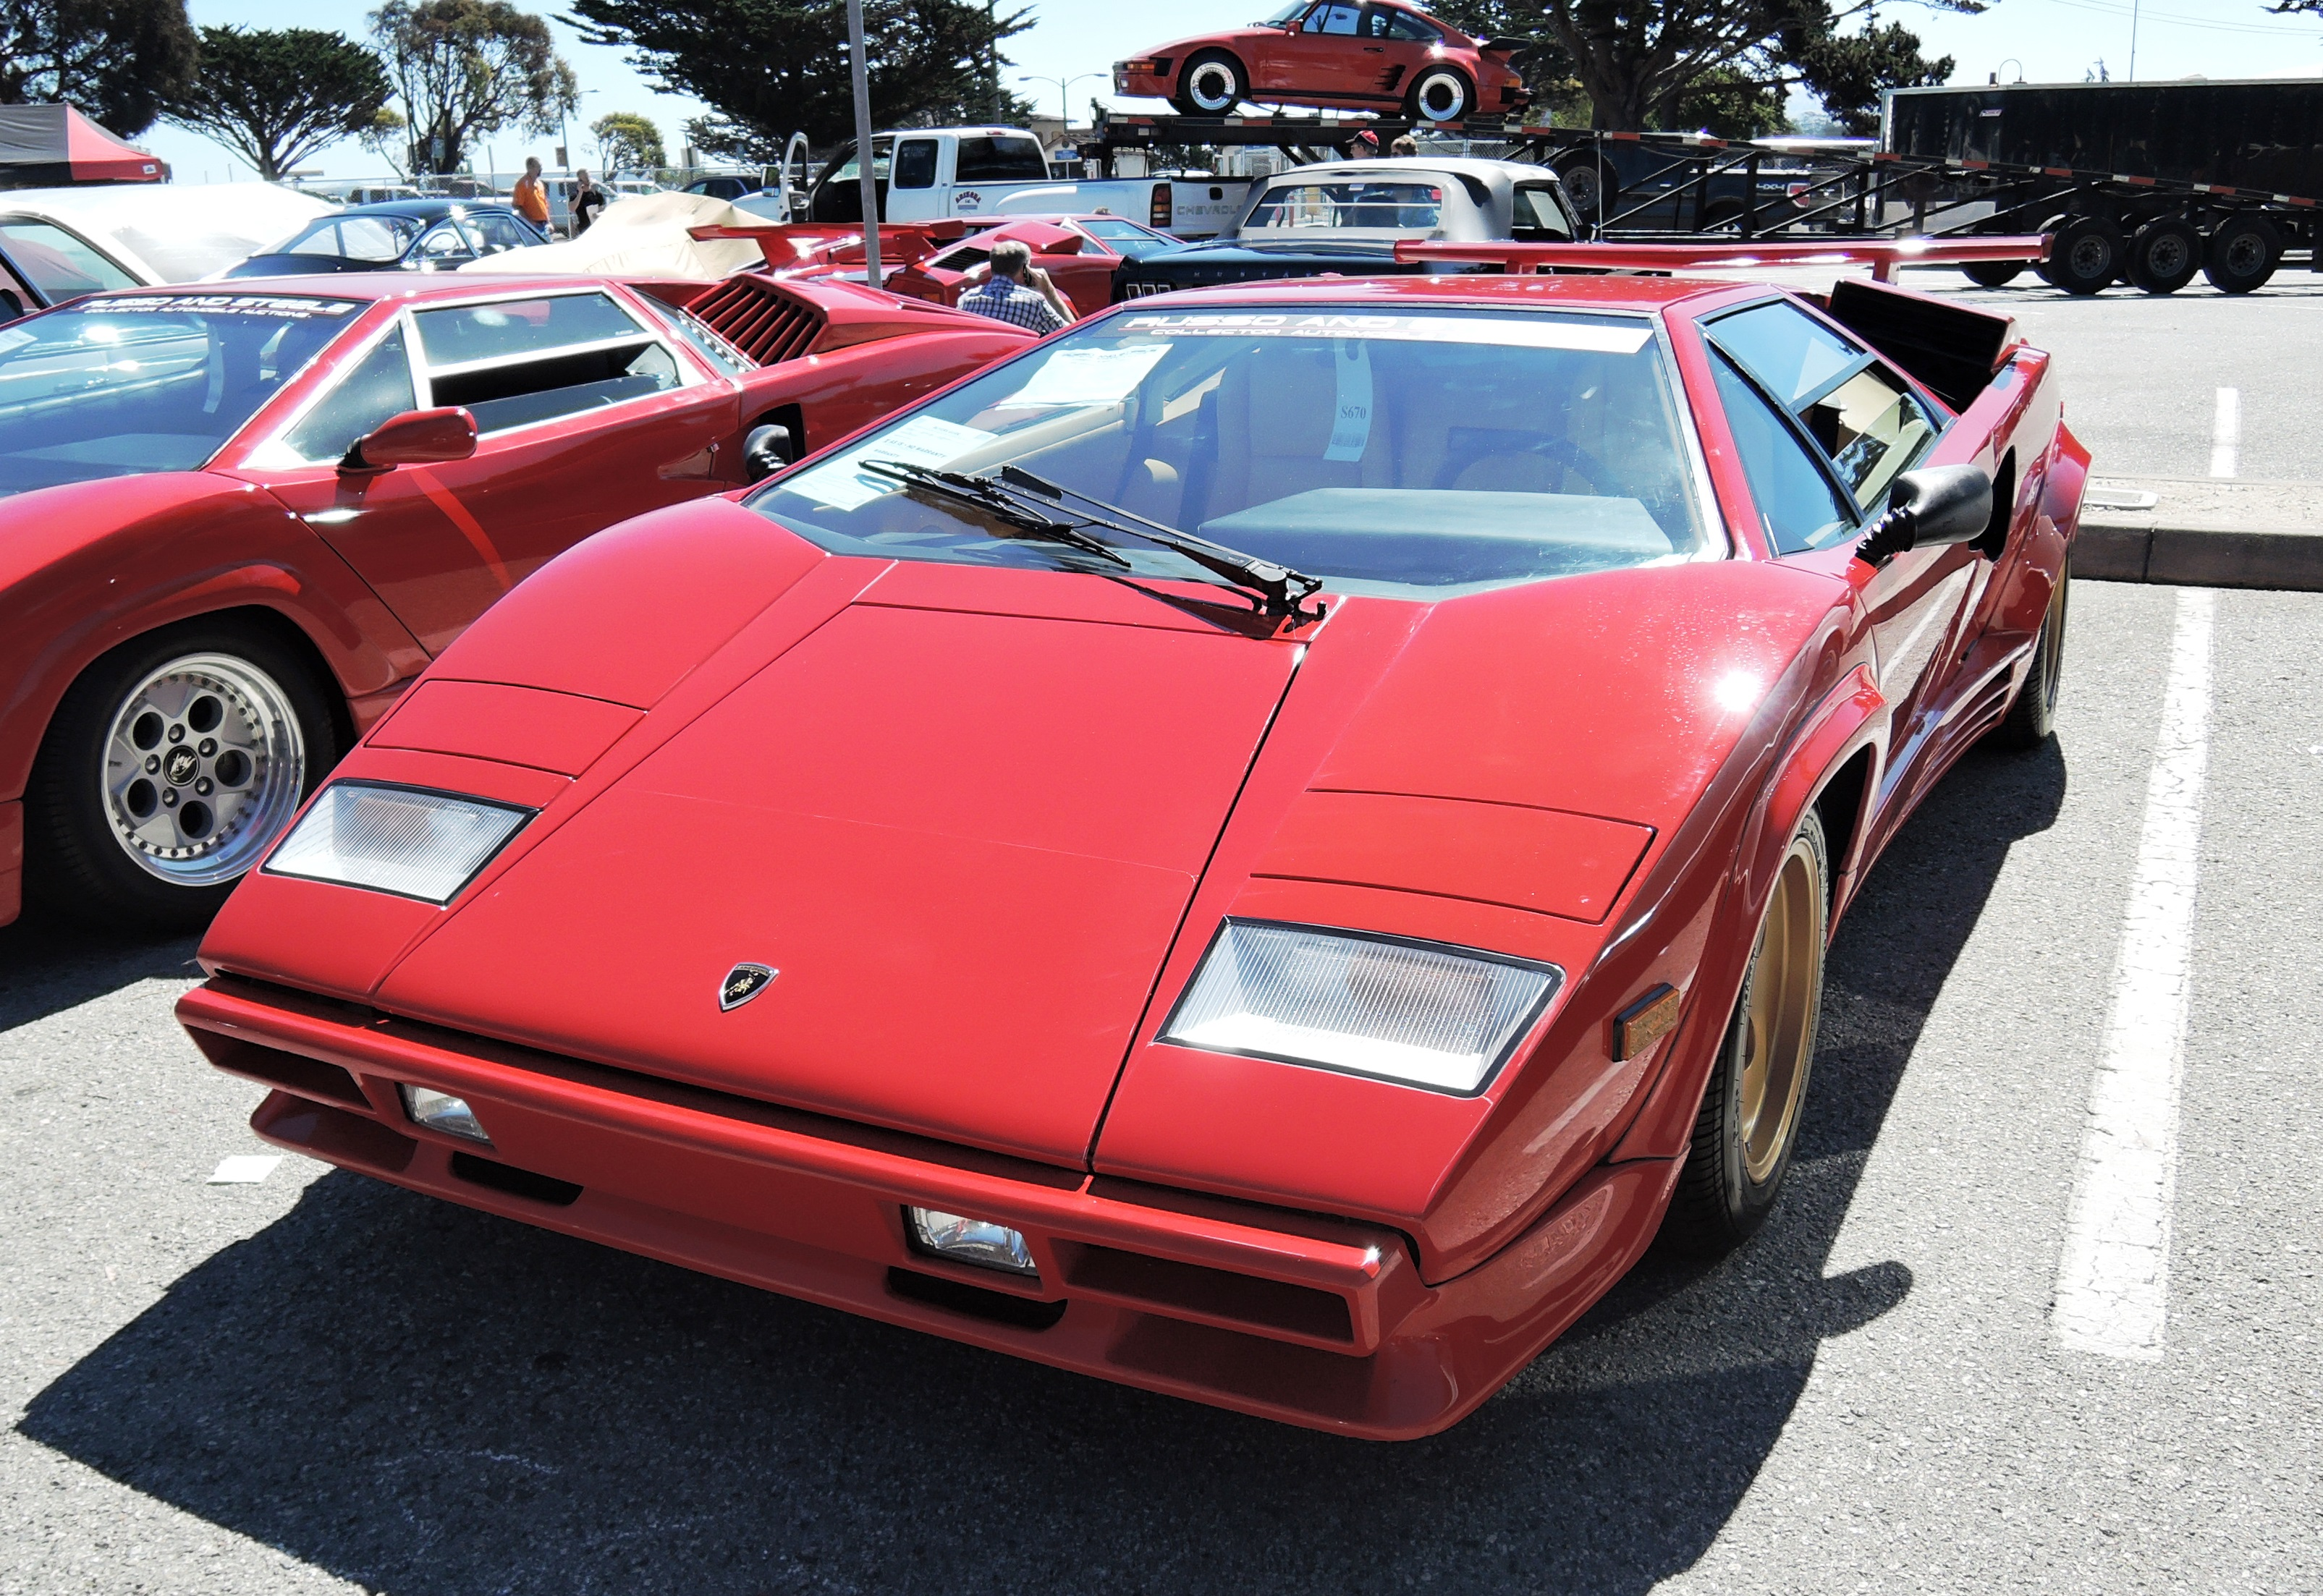 red 1988 Lamborghini Countach 5000QV at Russo & Steele - classic car auctions